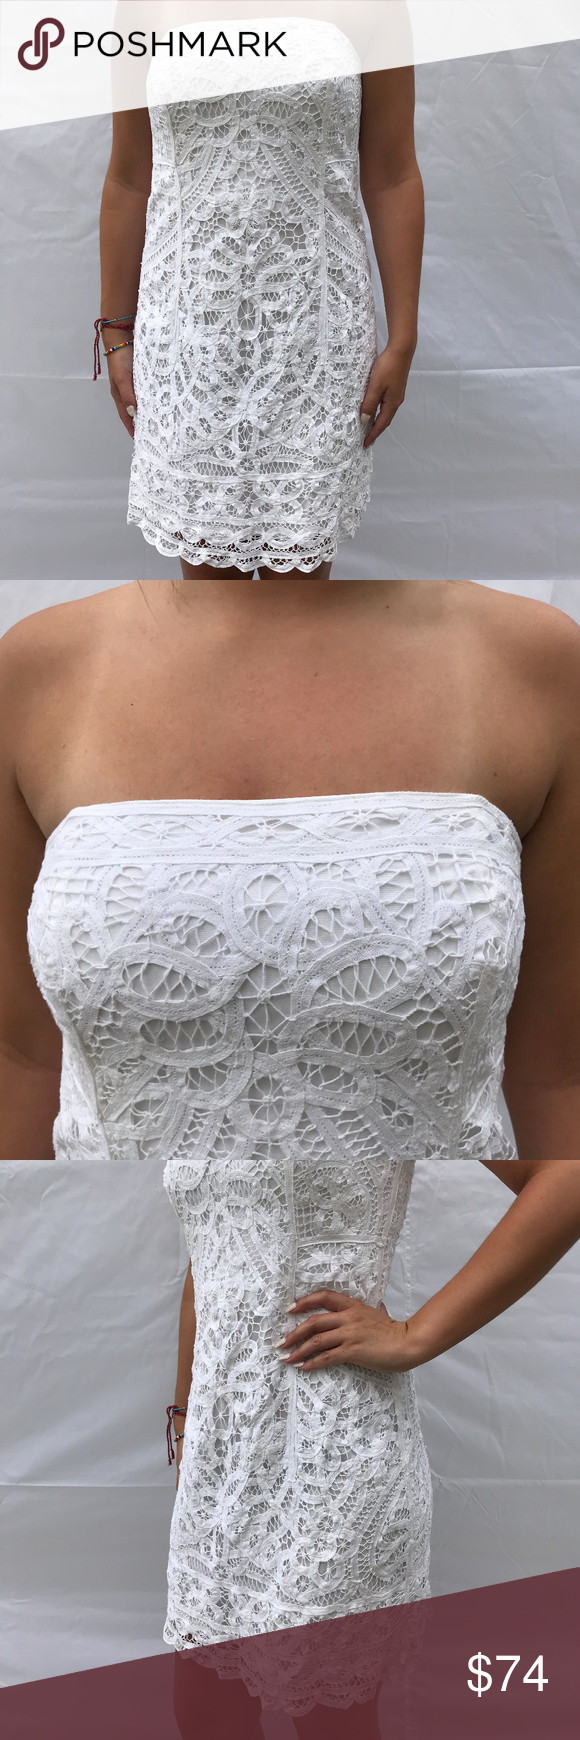 Lilly Pulitzer Strapless Crochet Lace Dress M Lace Dress Crochet Lace Dress Dresses [ 1740 x 580 Pixel ]